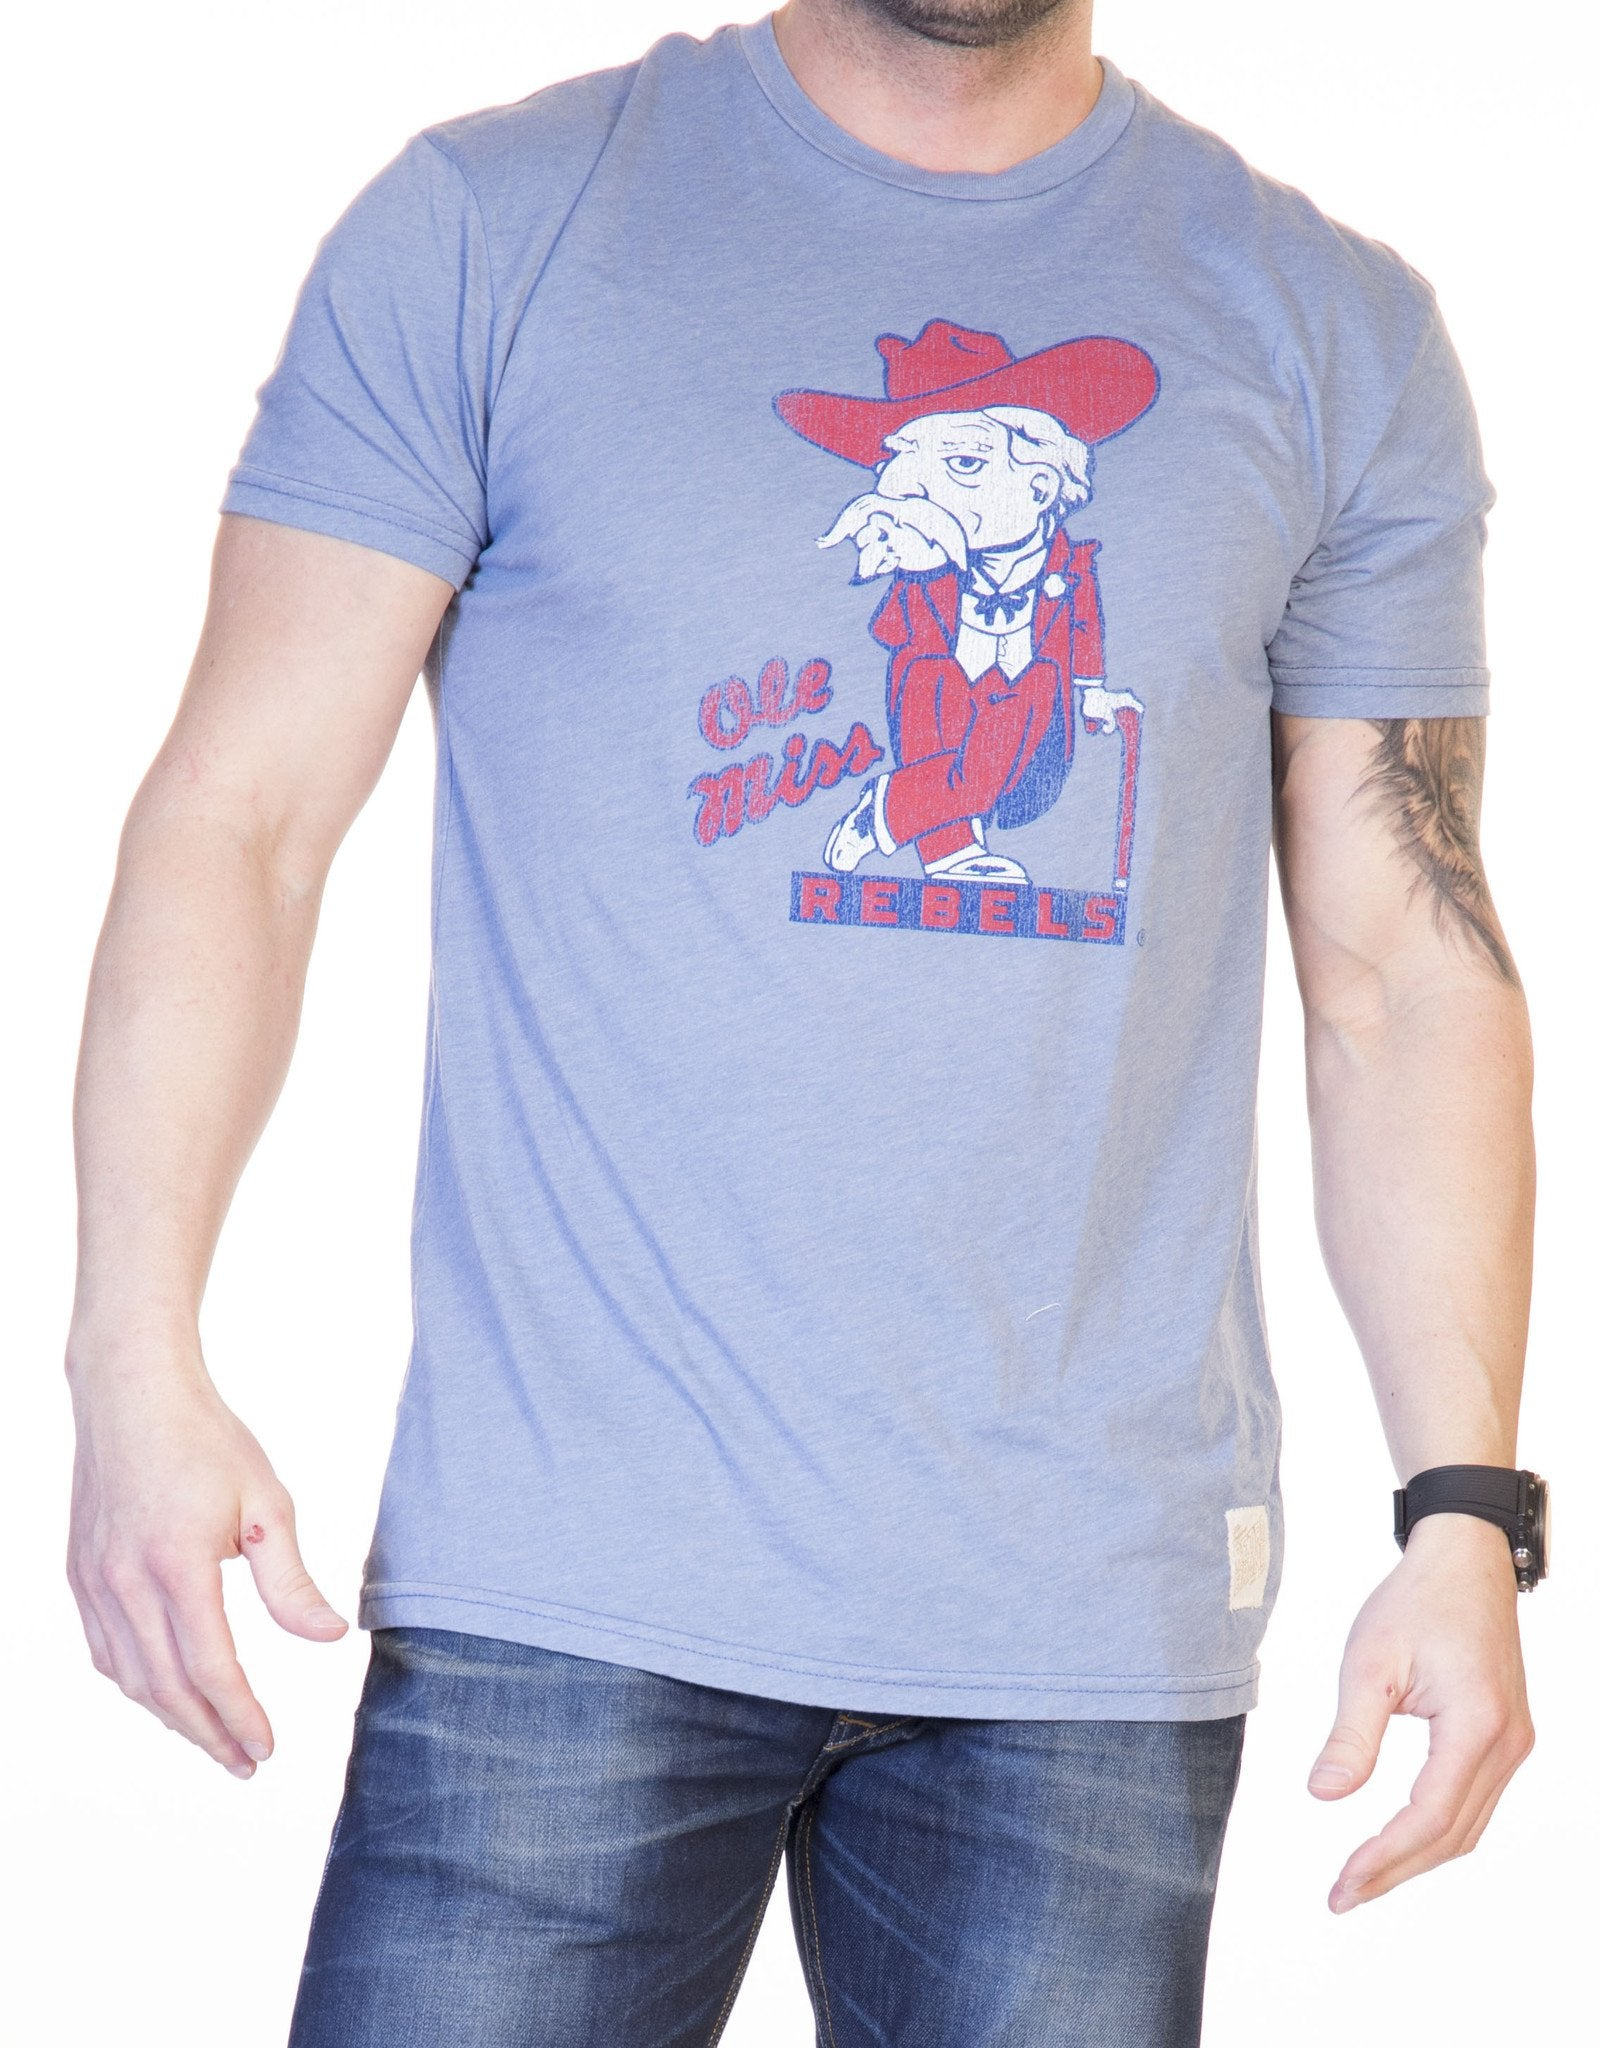 Retro Brand Ole Miss Colonel Reb Tee RB130 COLE200A